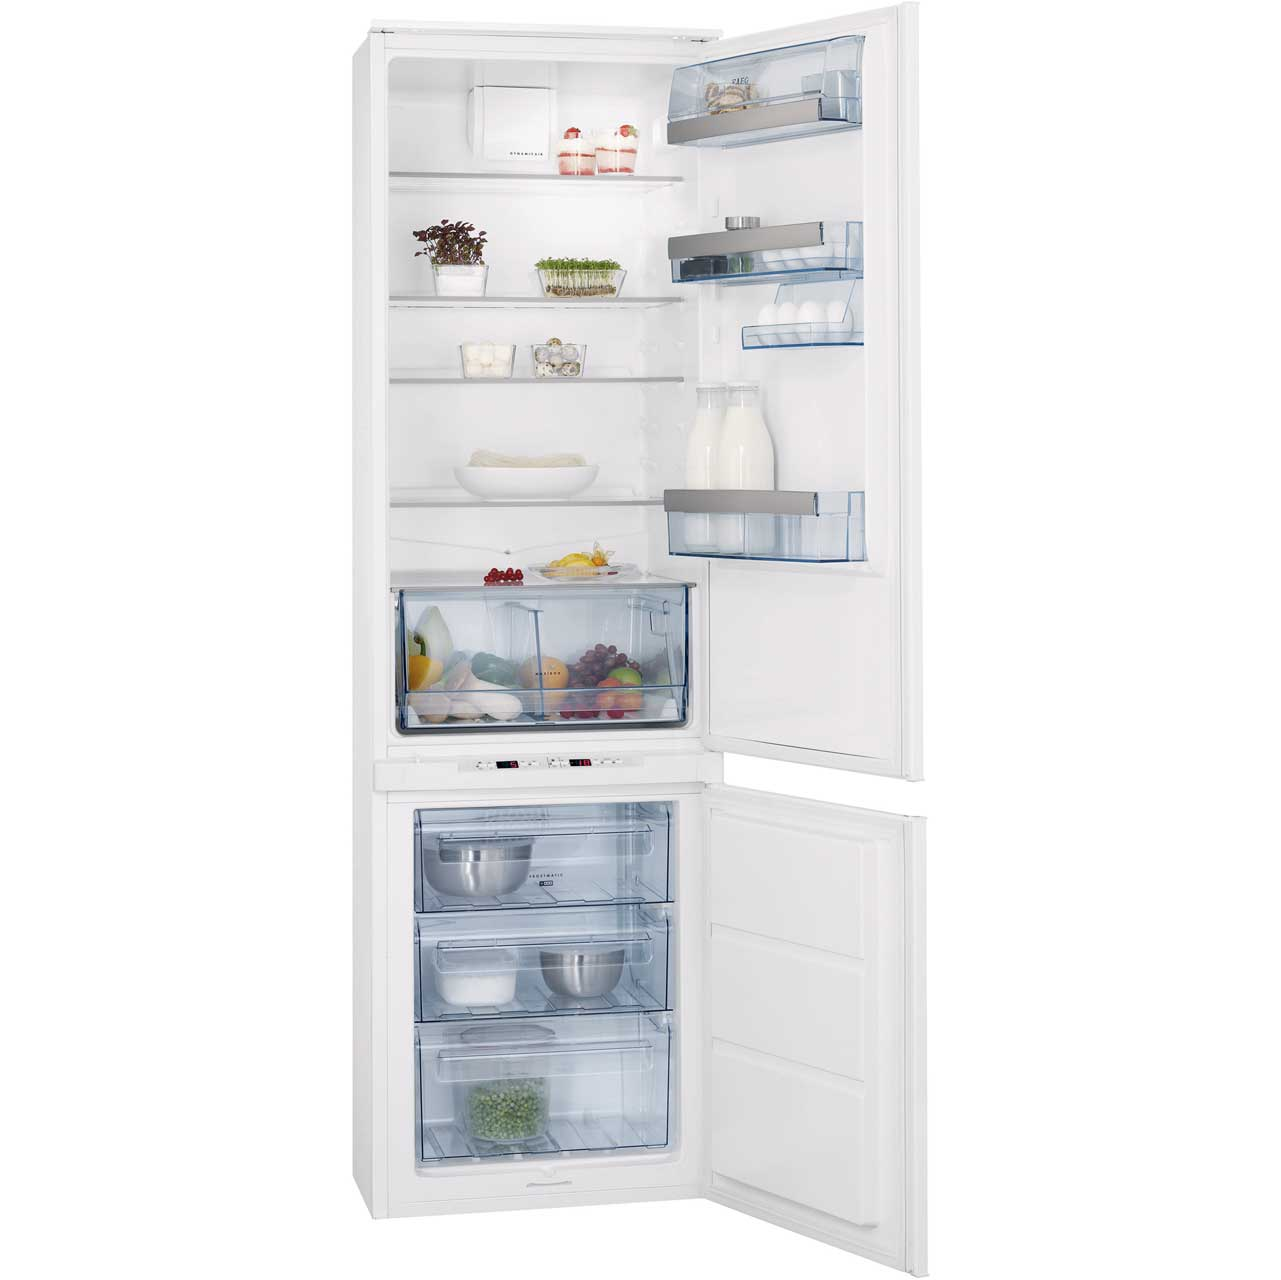 AEG SCT71906S0 Integrated Fridge Freezer Frost Free in White